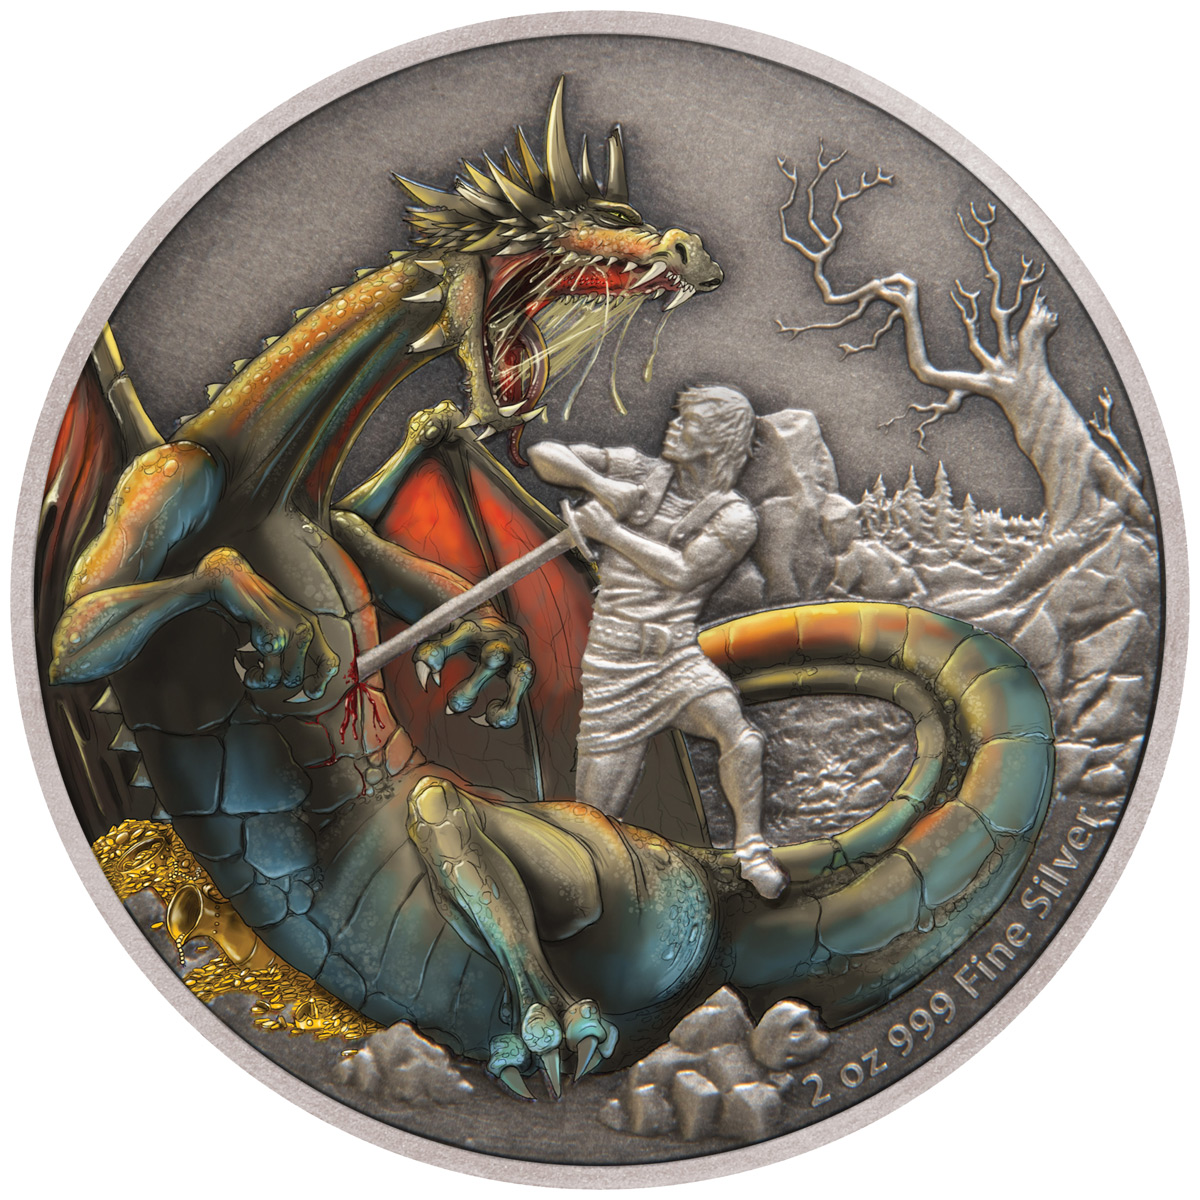 2020 Niue Mythical Dragons of the World - Norse Dragon 2 oz Silver Colorized $5 Coin GEM BU OGP